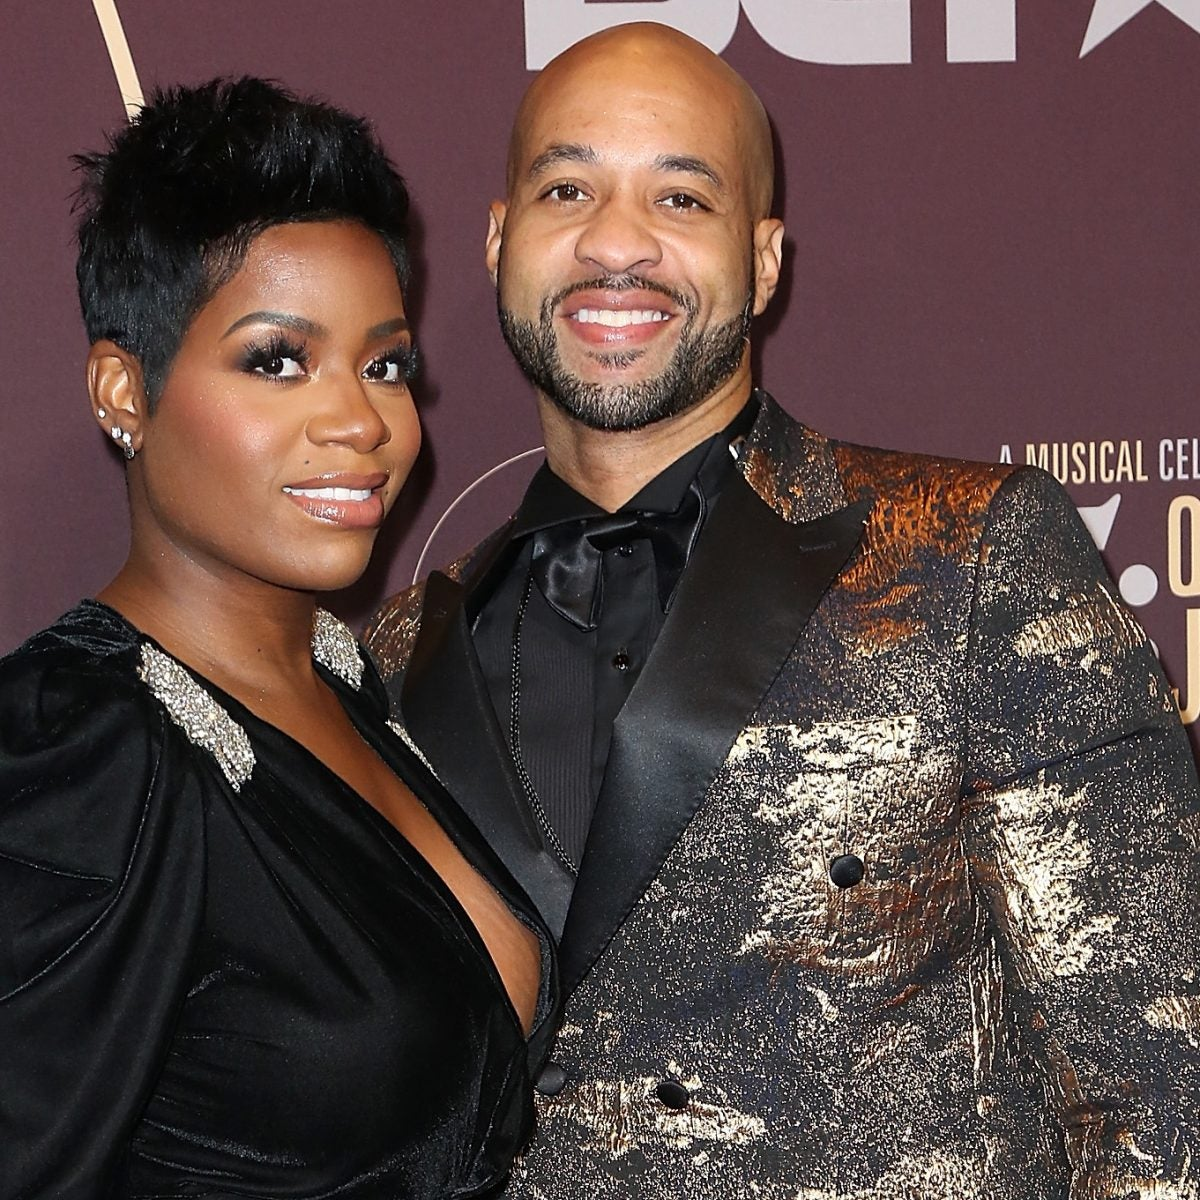 Fantasia And Kendall Taylor Turned On The Fireworks For Their Sweet Gender Reveal